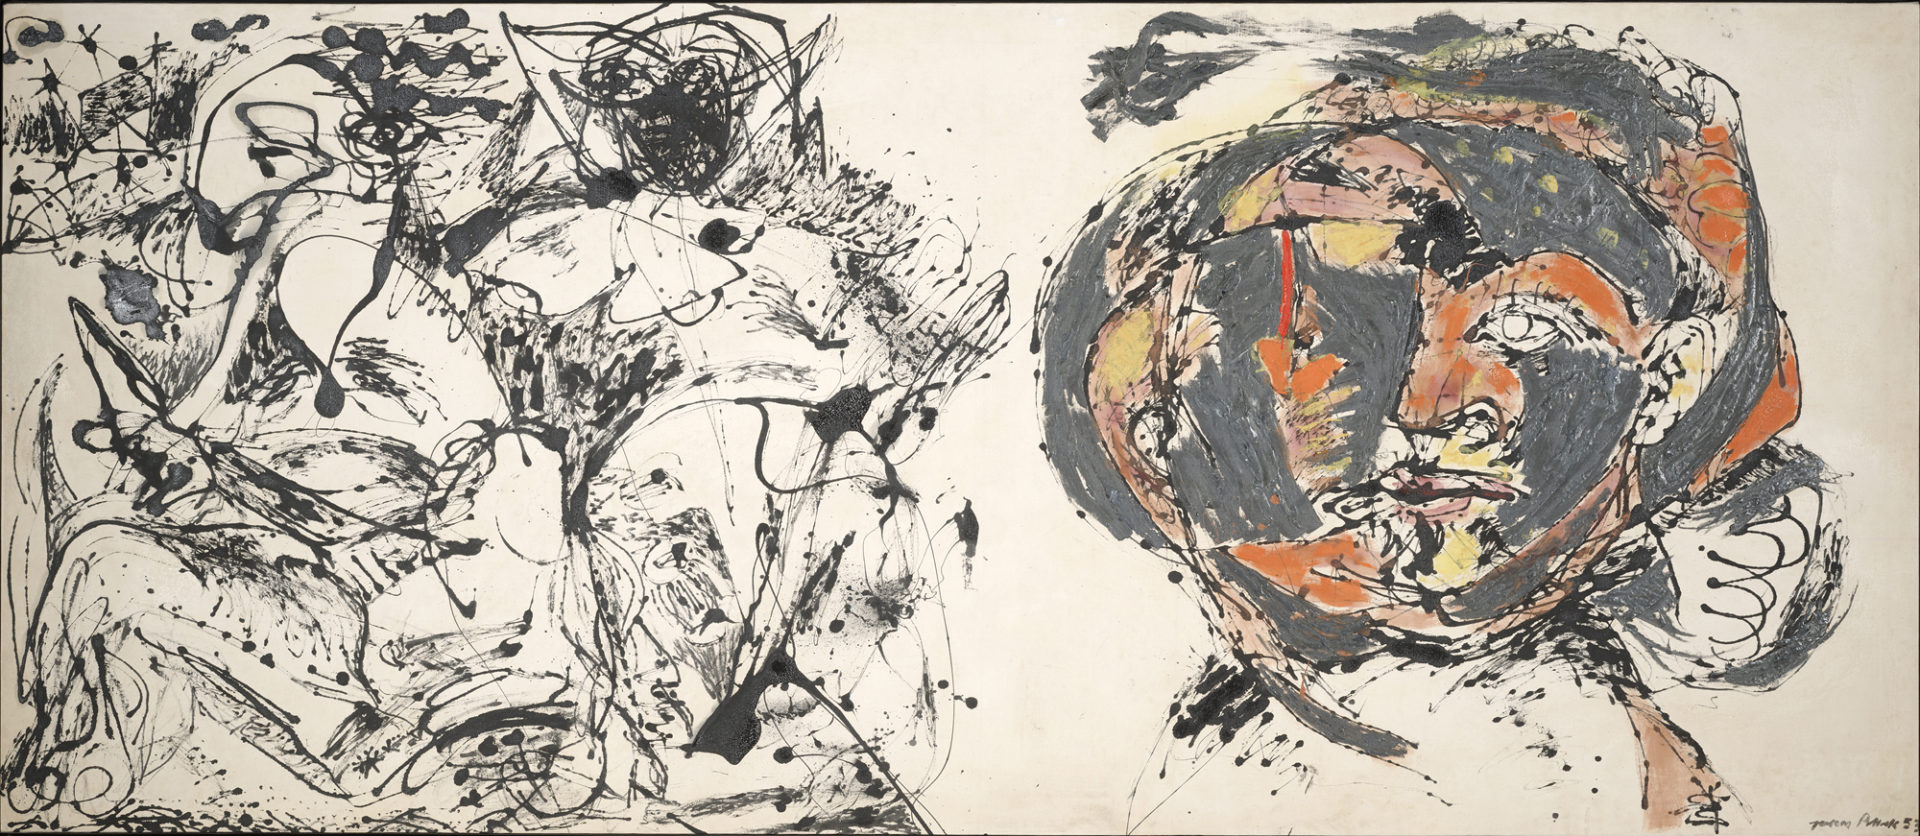 jackson pollock blind spots the london magazine jackson pollock portrait and a dream 1953 acirccopy pollock krasner foundation artists rights